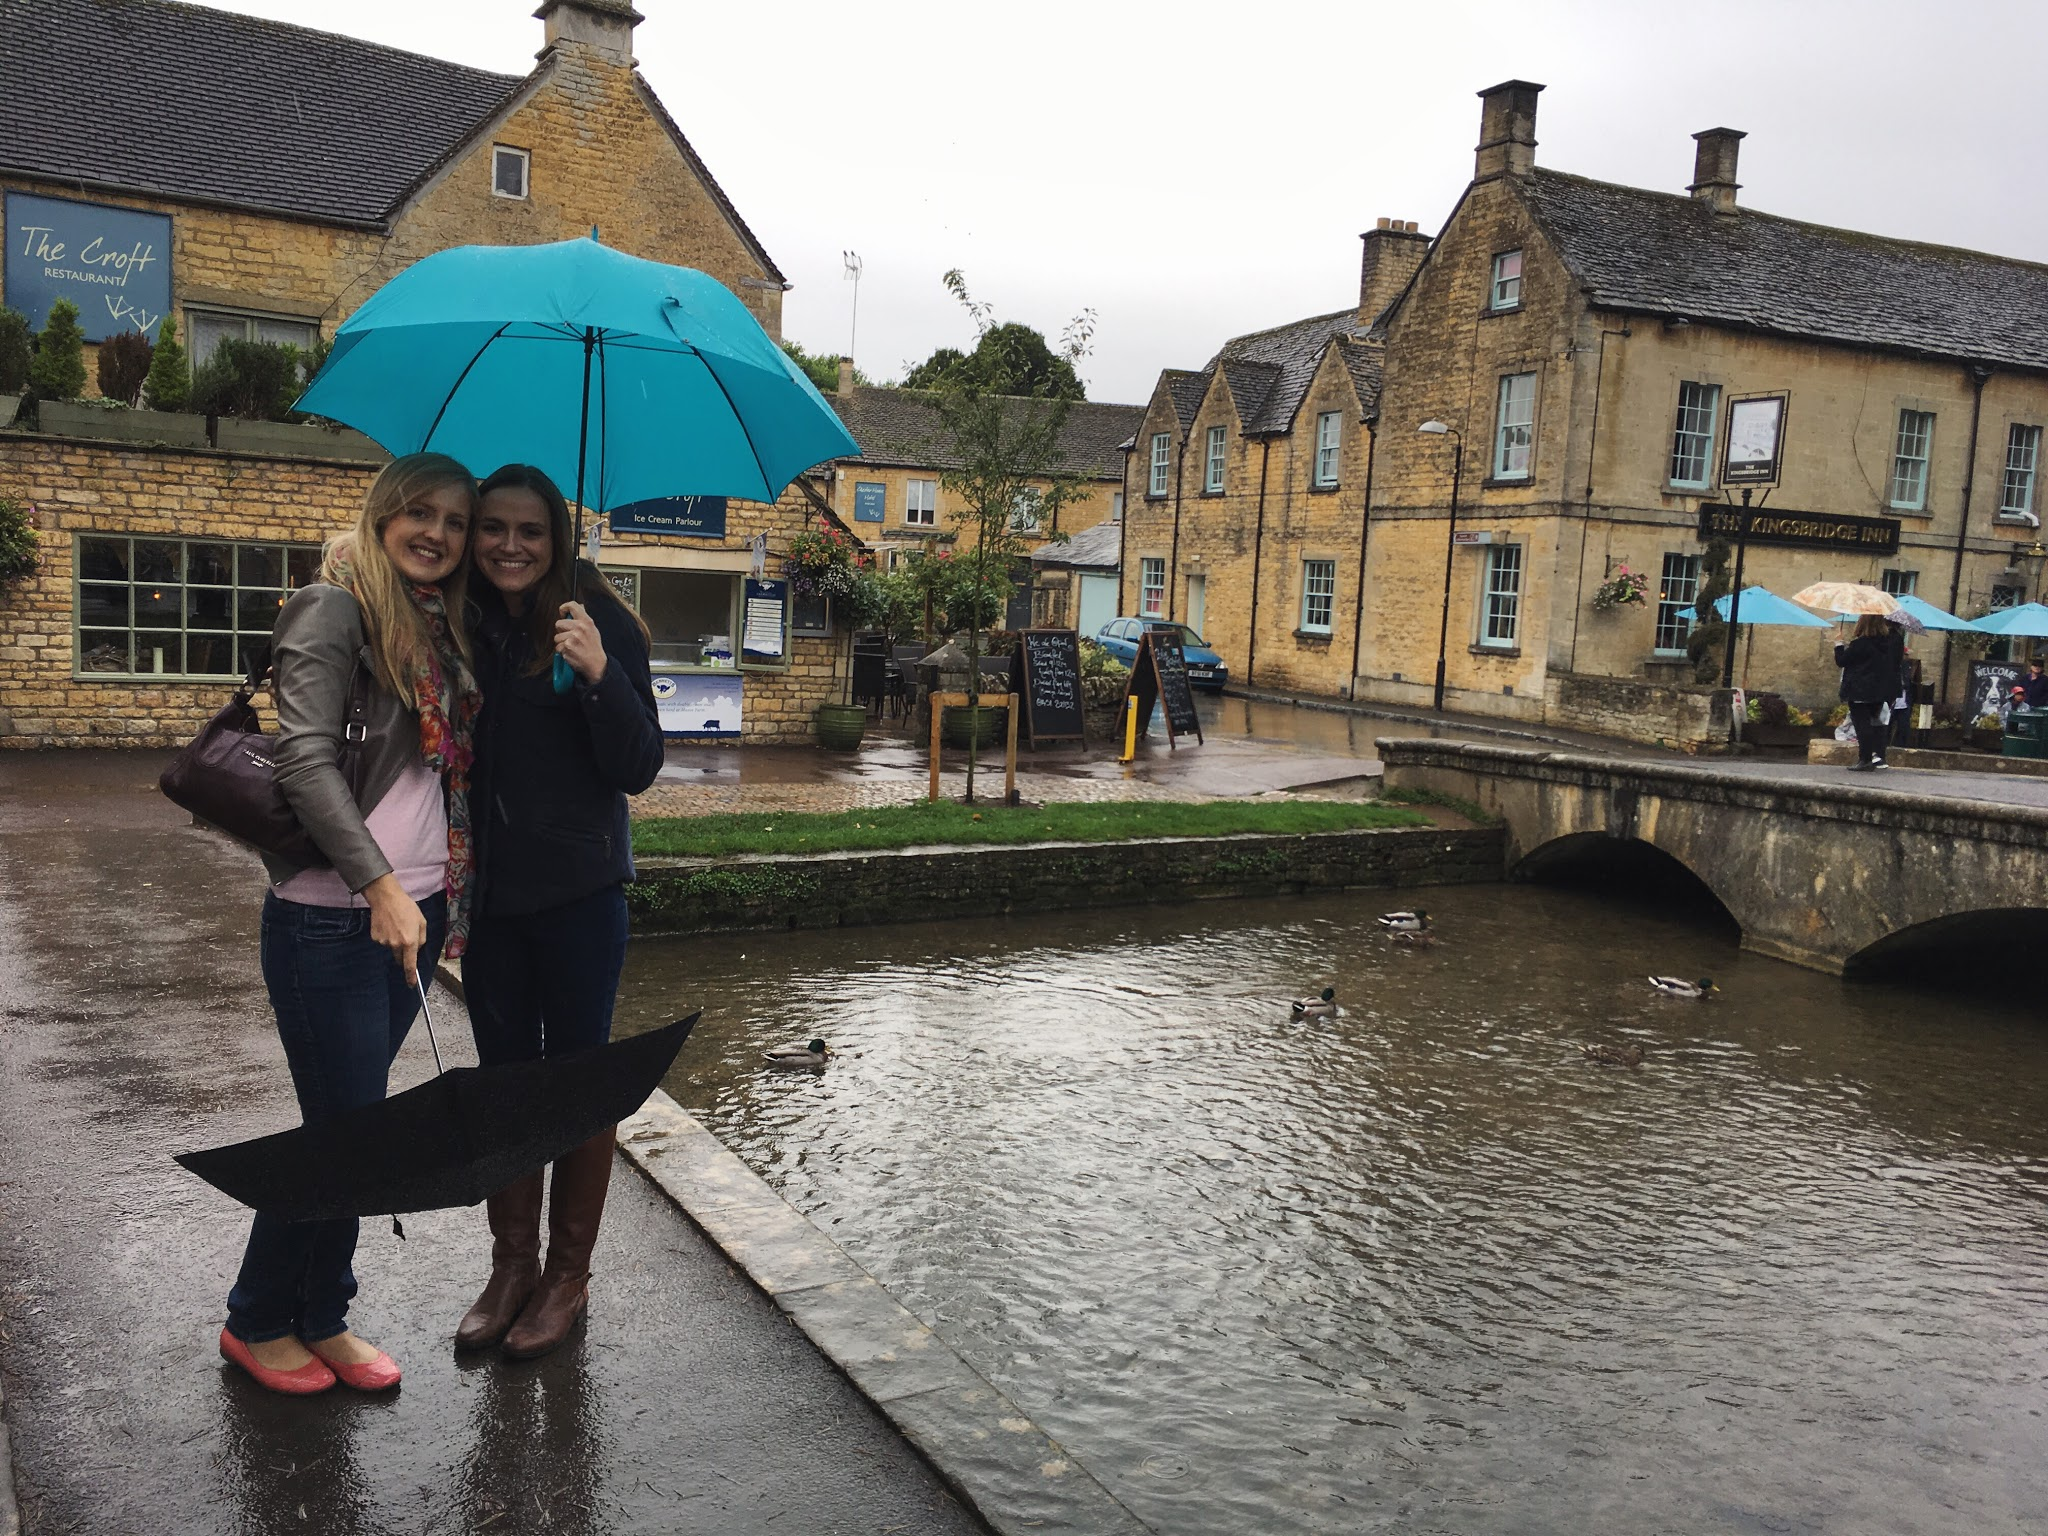 Rain in Bourton-on-the-Water